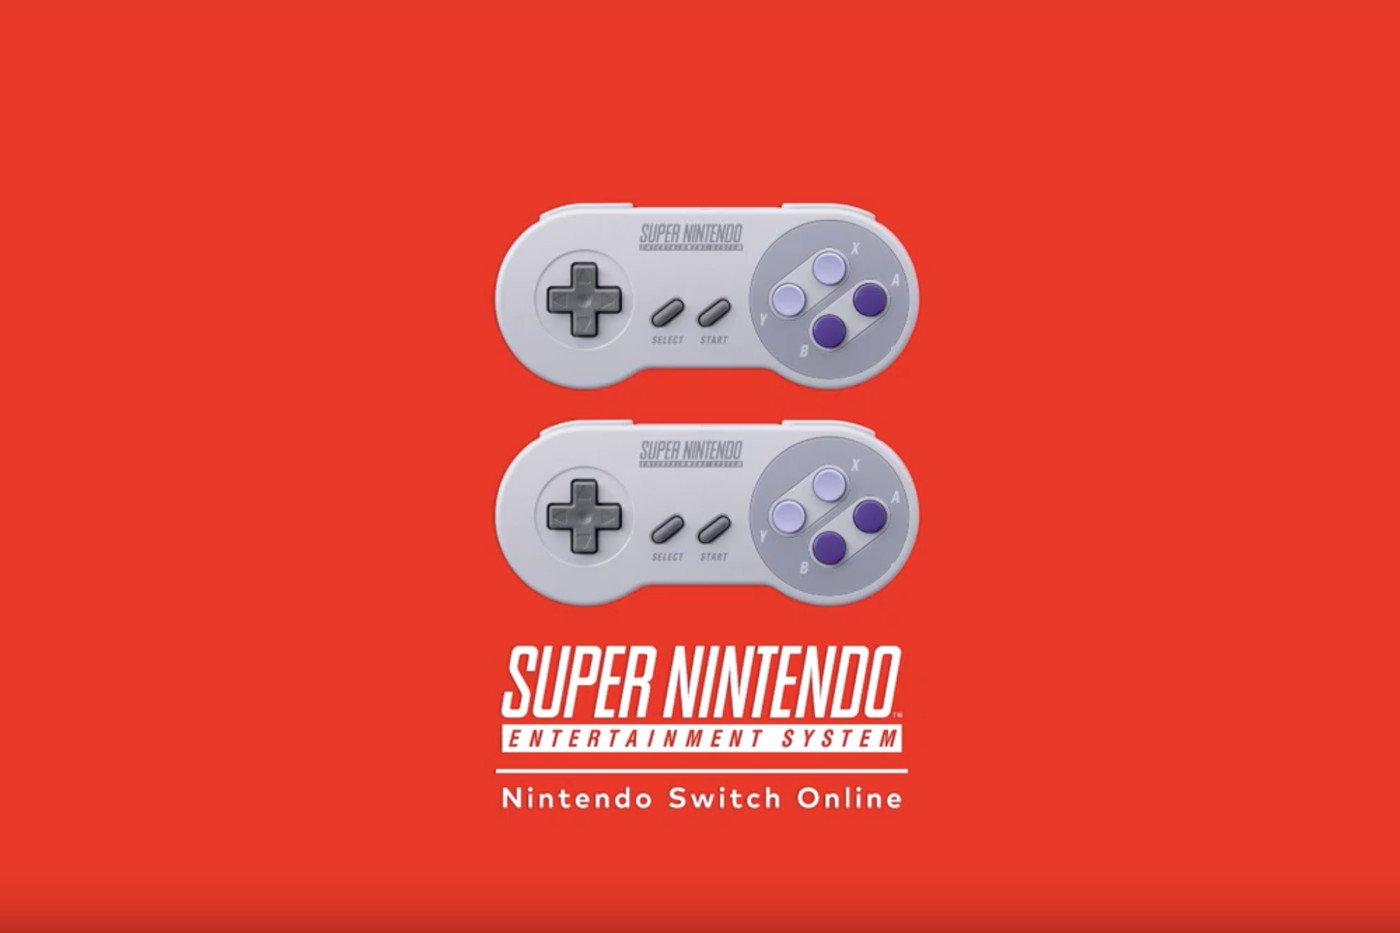 Ya está disponible la colección de SNES para Nintendo Switch